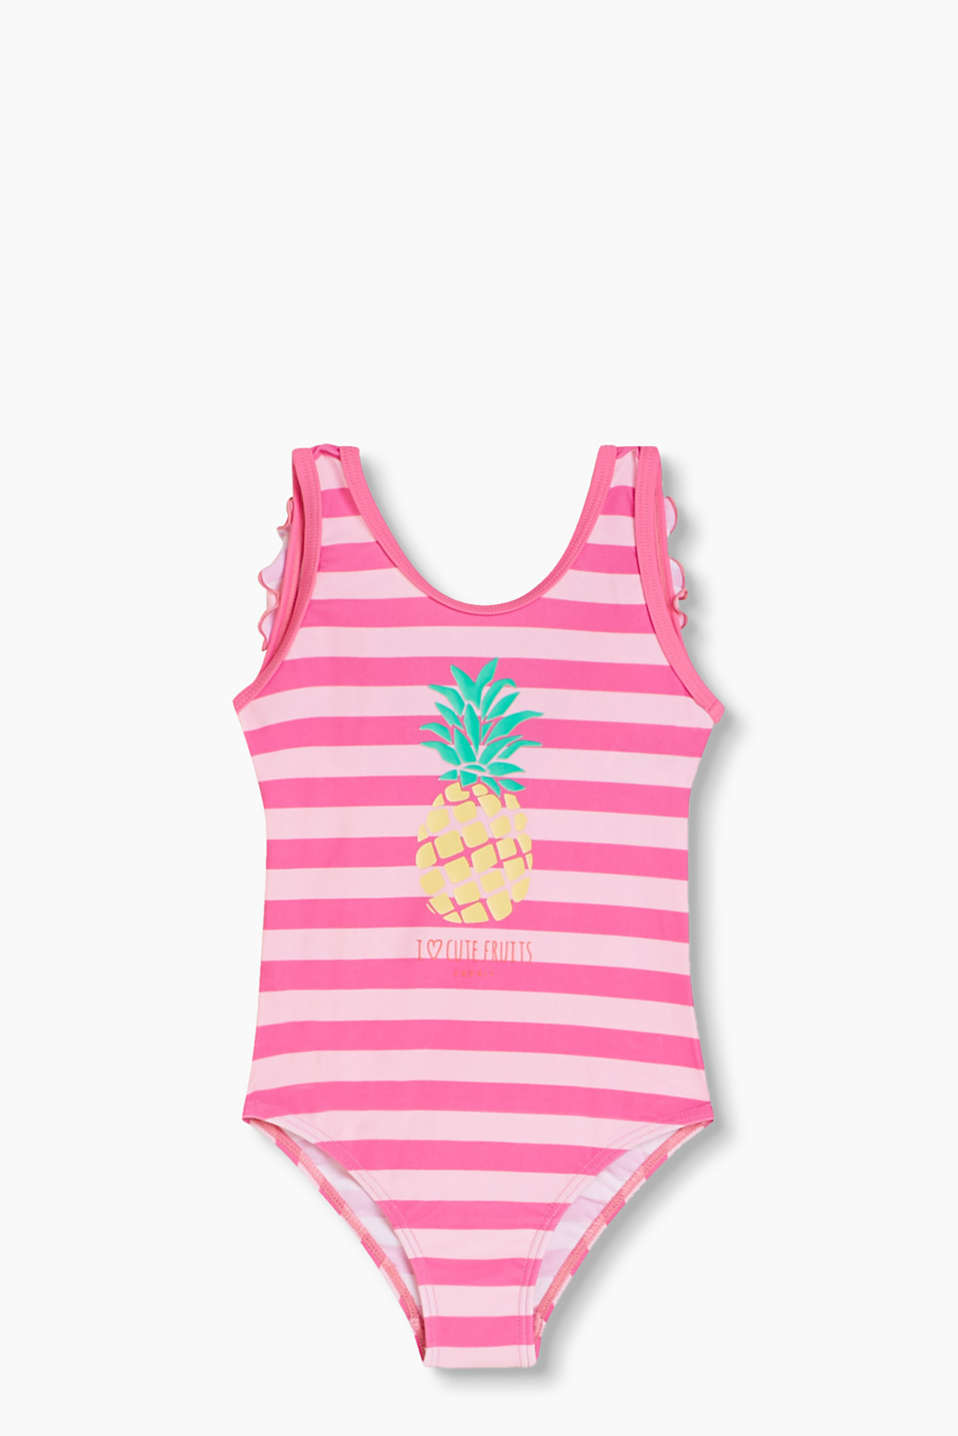 with a pineapple print and frilly straps